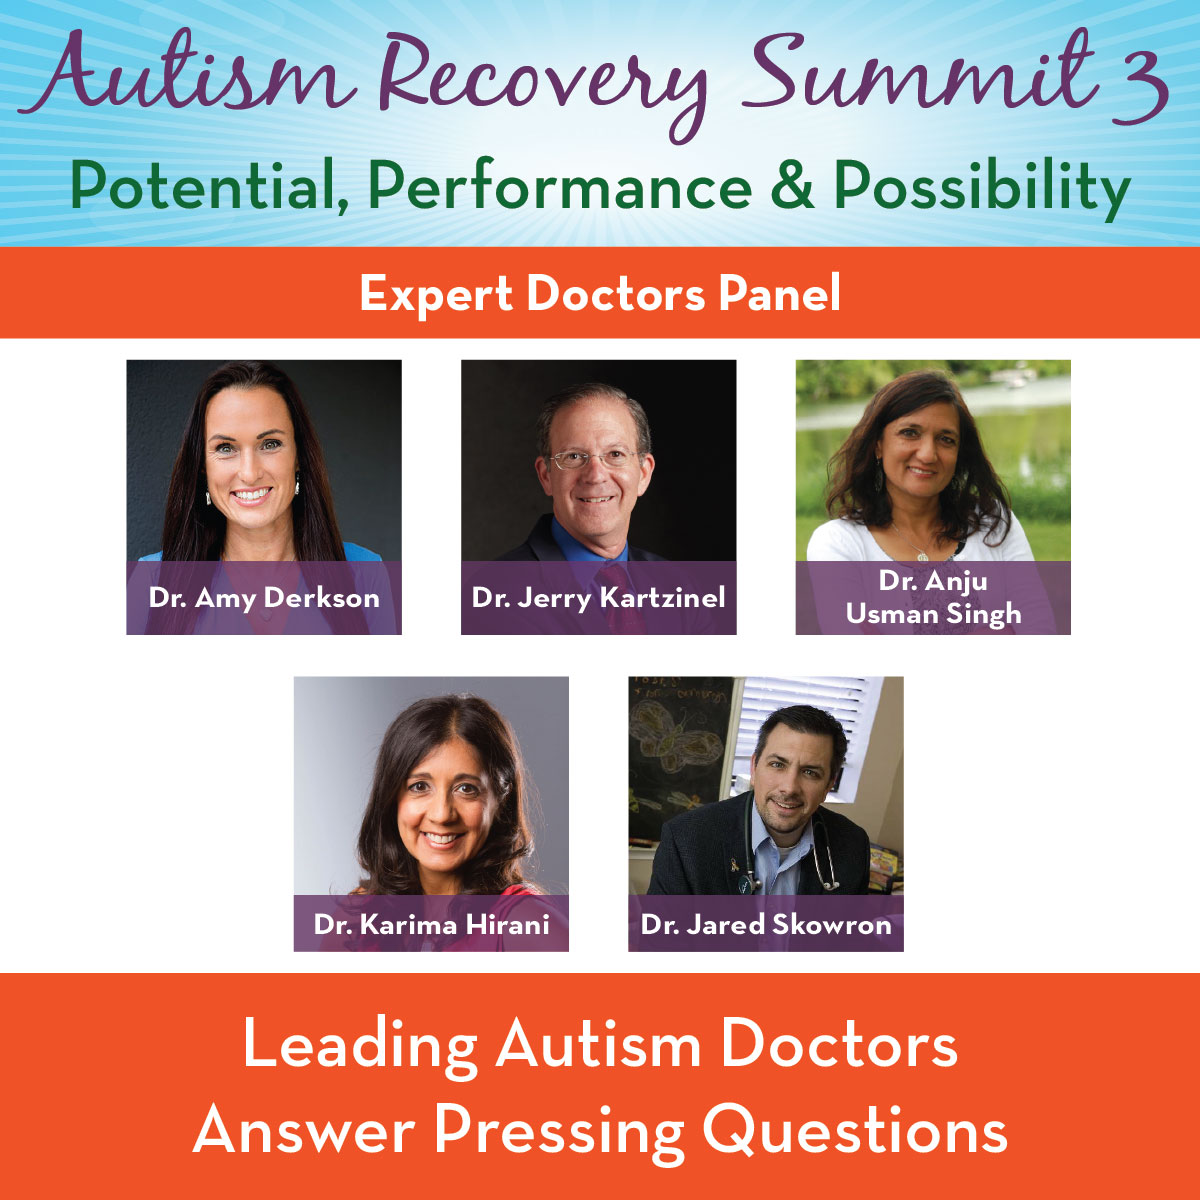 Autism Recovery Summit